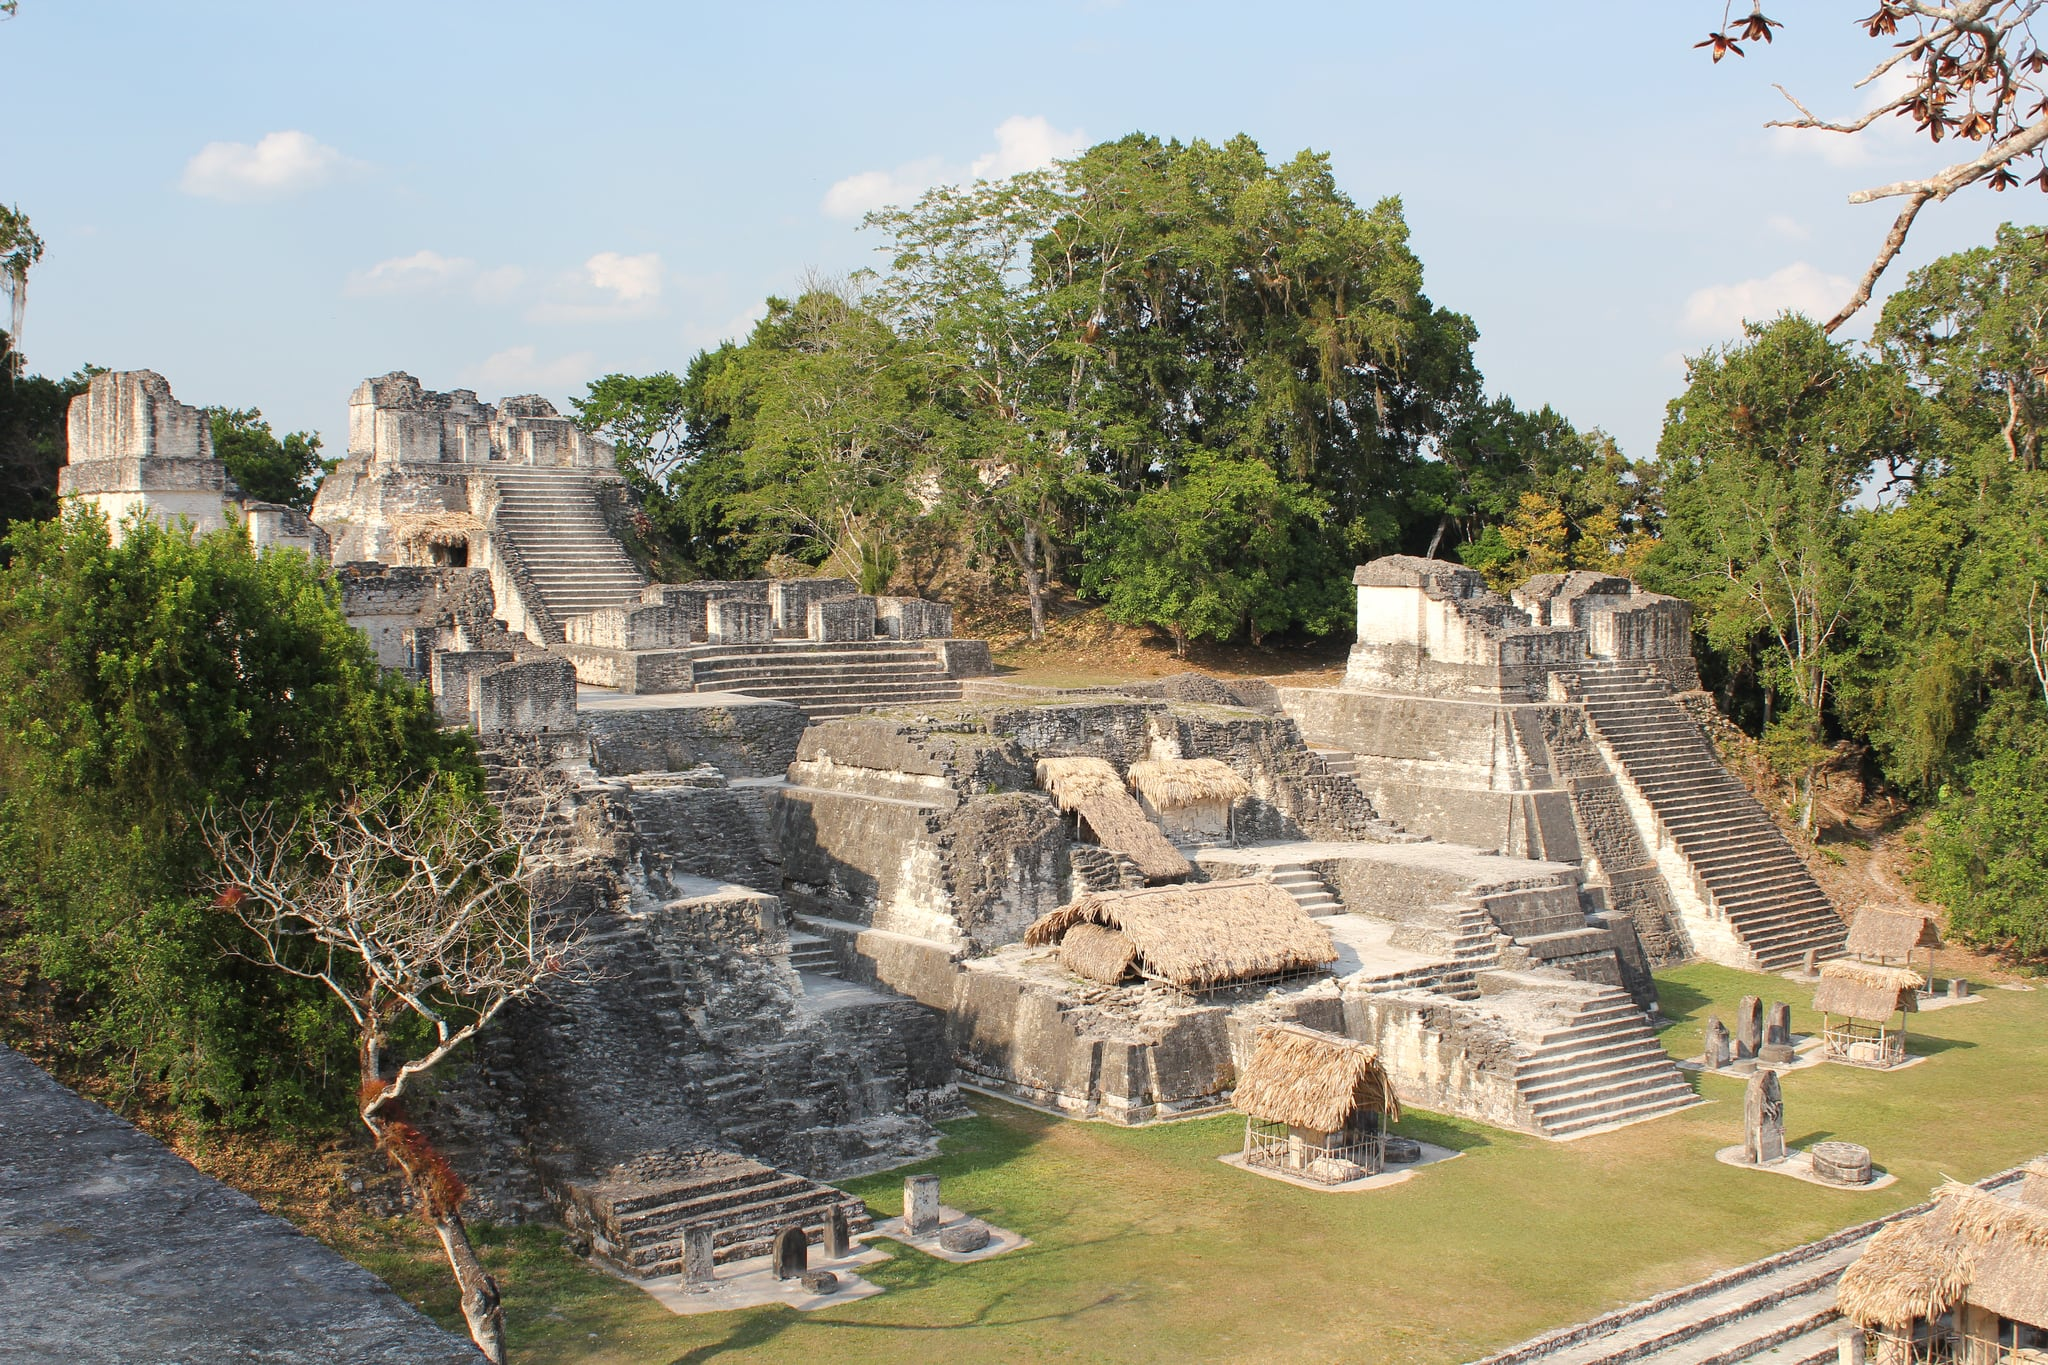 Изображение North Acropolis. tikal northacropolis acropolis ruins ancientcity city rainforest archaeologicalsite site urbancenter precolumbian mayacivilization maya peténbasin elpetén tikalnationalpark nationalpark capital conqueststate kingdom ancientmaya monumentalarchitecture architecture classicperiod teotihuacan lowlandmaya lowland rulers tombs monuments temples palaces pyramids architecturalcomplex royalnecropolis necropolis royaltombs kings yaxnuunayiini siyajchankawiilii wakchankawiil animalskull yaxehbxook stelae stela altar hieroglyphs stairs temple pyramid guatemala mayapyramid mayanpyramid mesoamericanpyramid unescoworldheritagelist unescoworldheritage unesco worldheritagelist worldheritage heritage worldheritagesite 2014